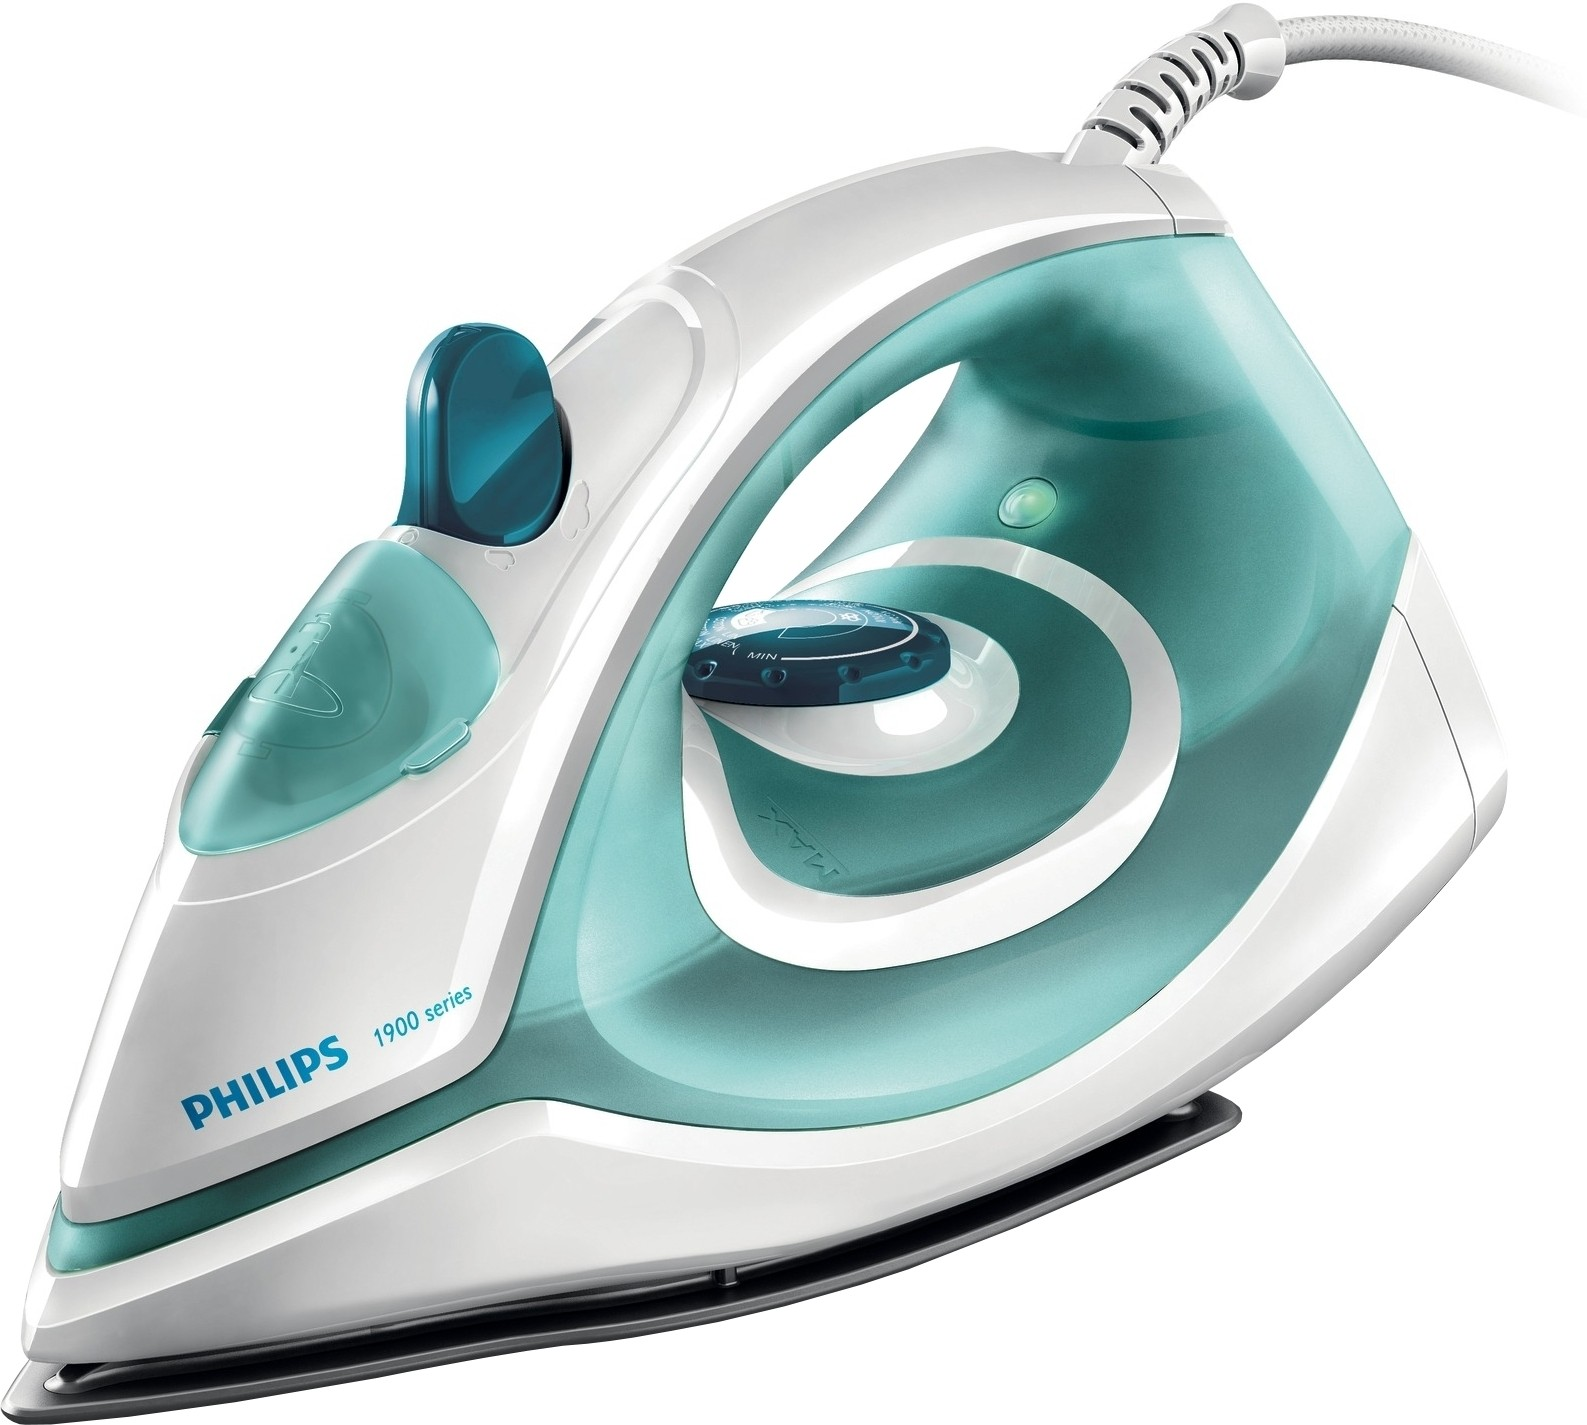 Deals - Delhi - Dry and Steam Iron <br> From Philips<br> Category - home_kitchen<br> Business - Flipkart.com